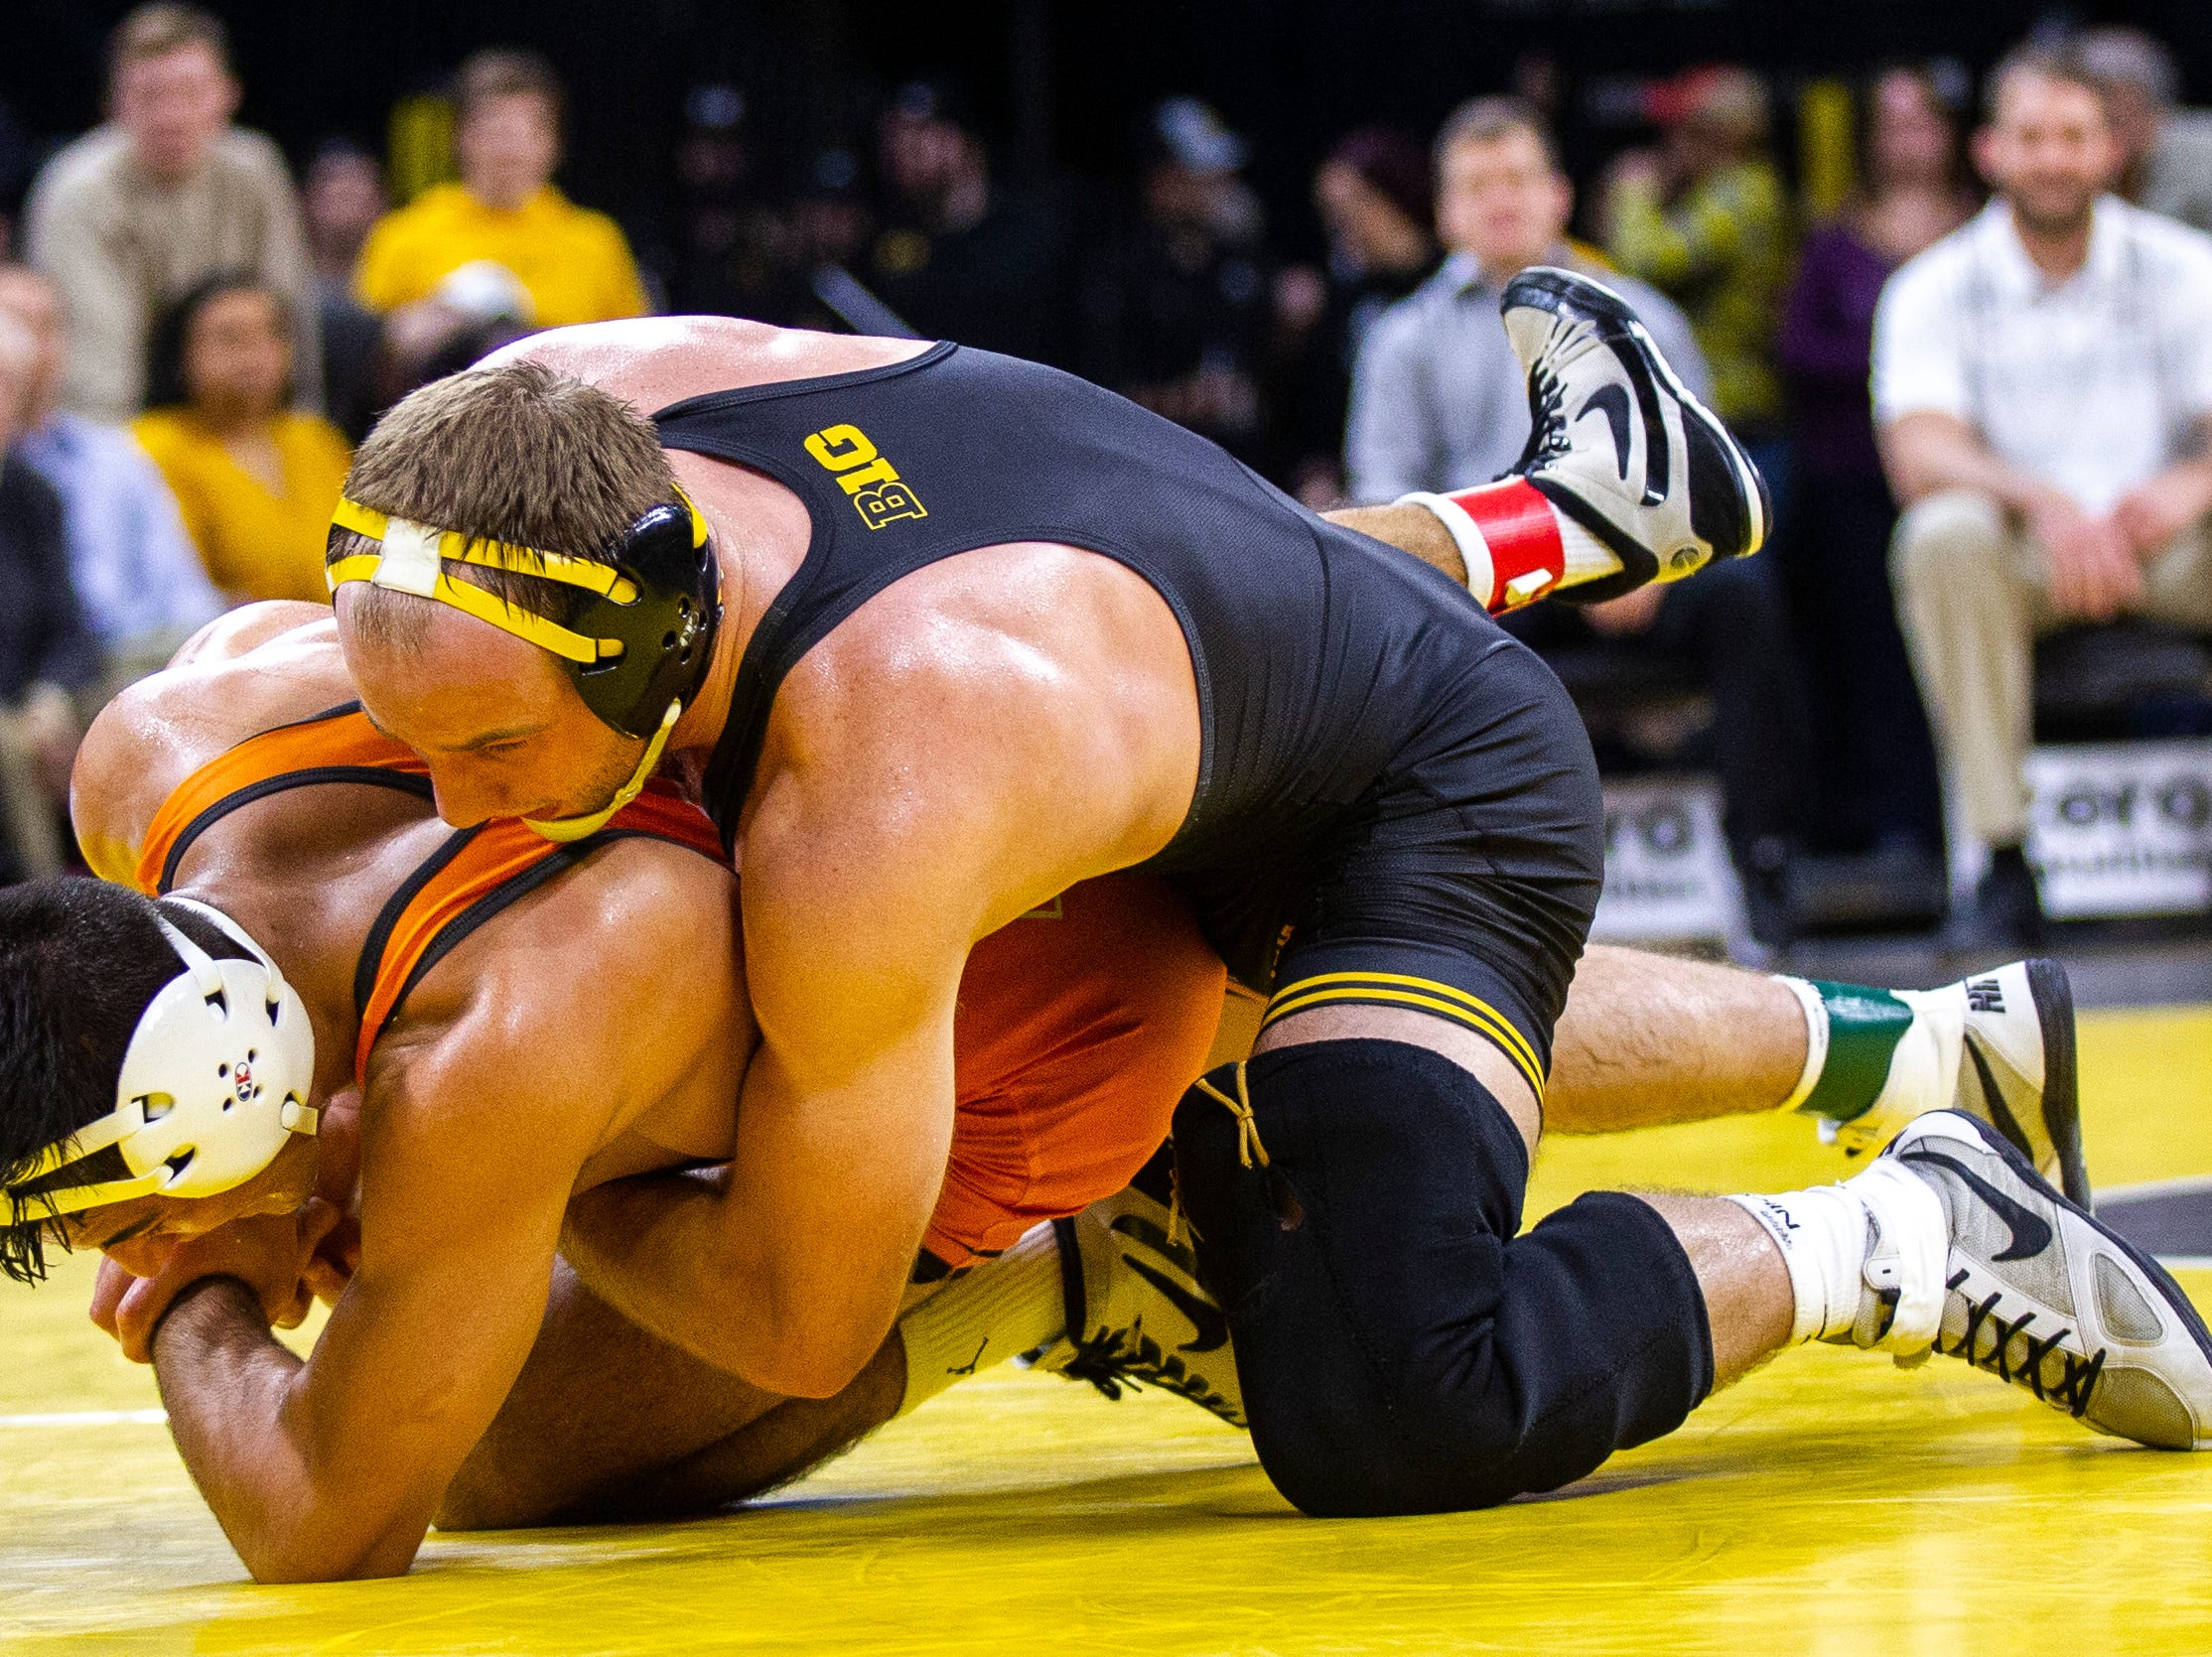 Iowa's Alex Marinelli (right) wrestles Princeton's Dale Tiongson at 165 during an NCAA wrestle dual on Friday, Nov. 16, 2018, at Carver-Hawkeye Arena in Iowa City.